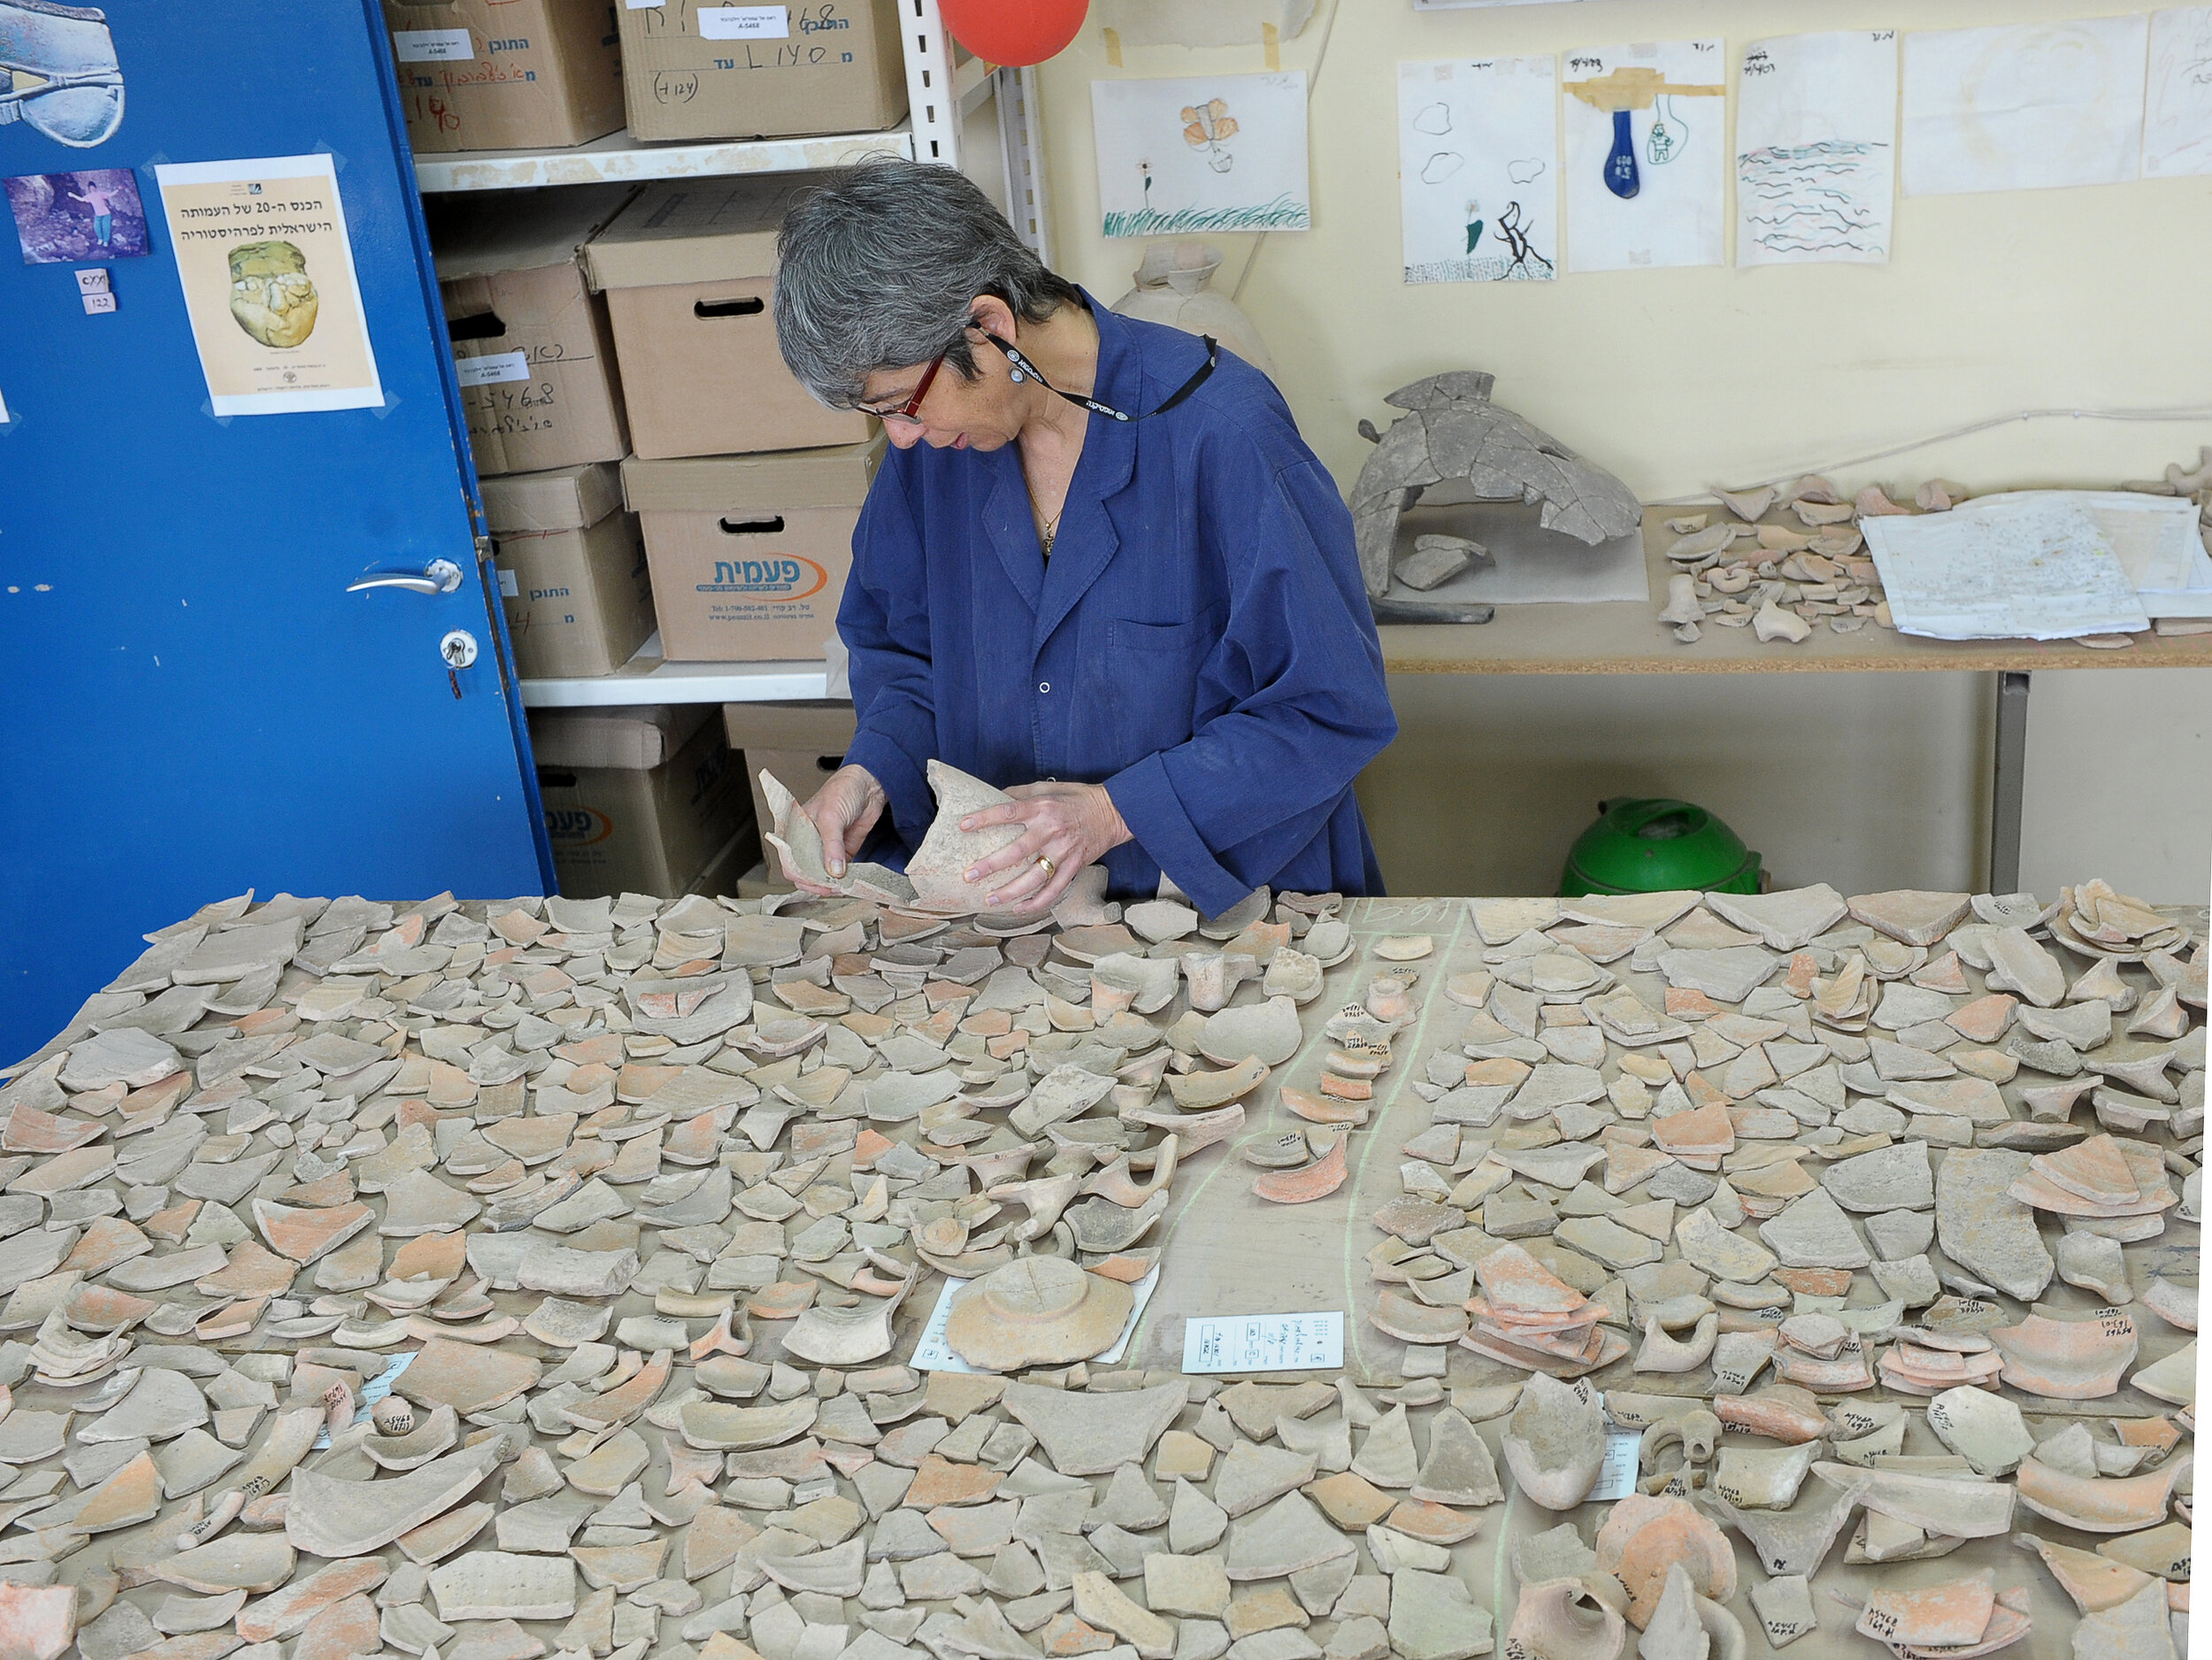 Photo: Clara Amit, Courtesy of the Israel Antiquities Authority